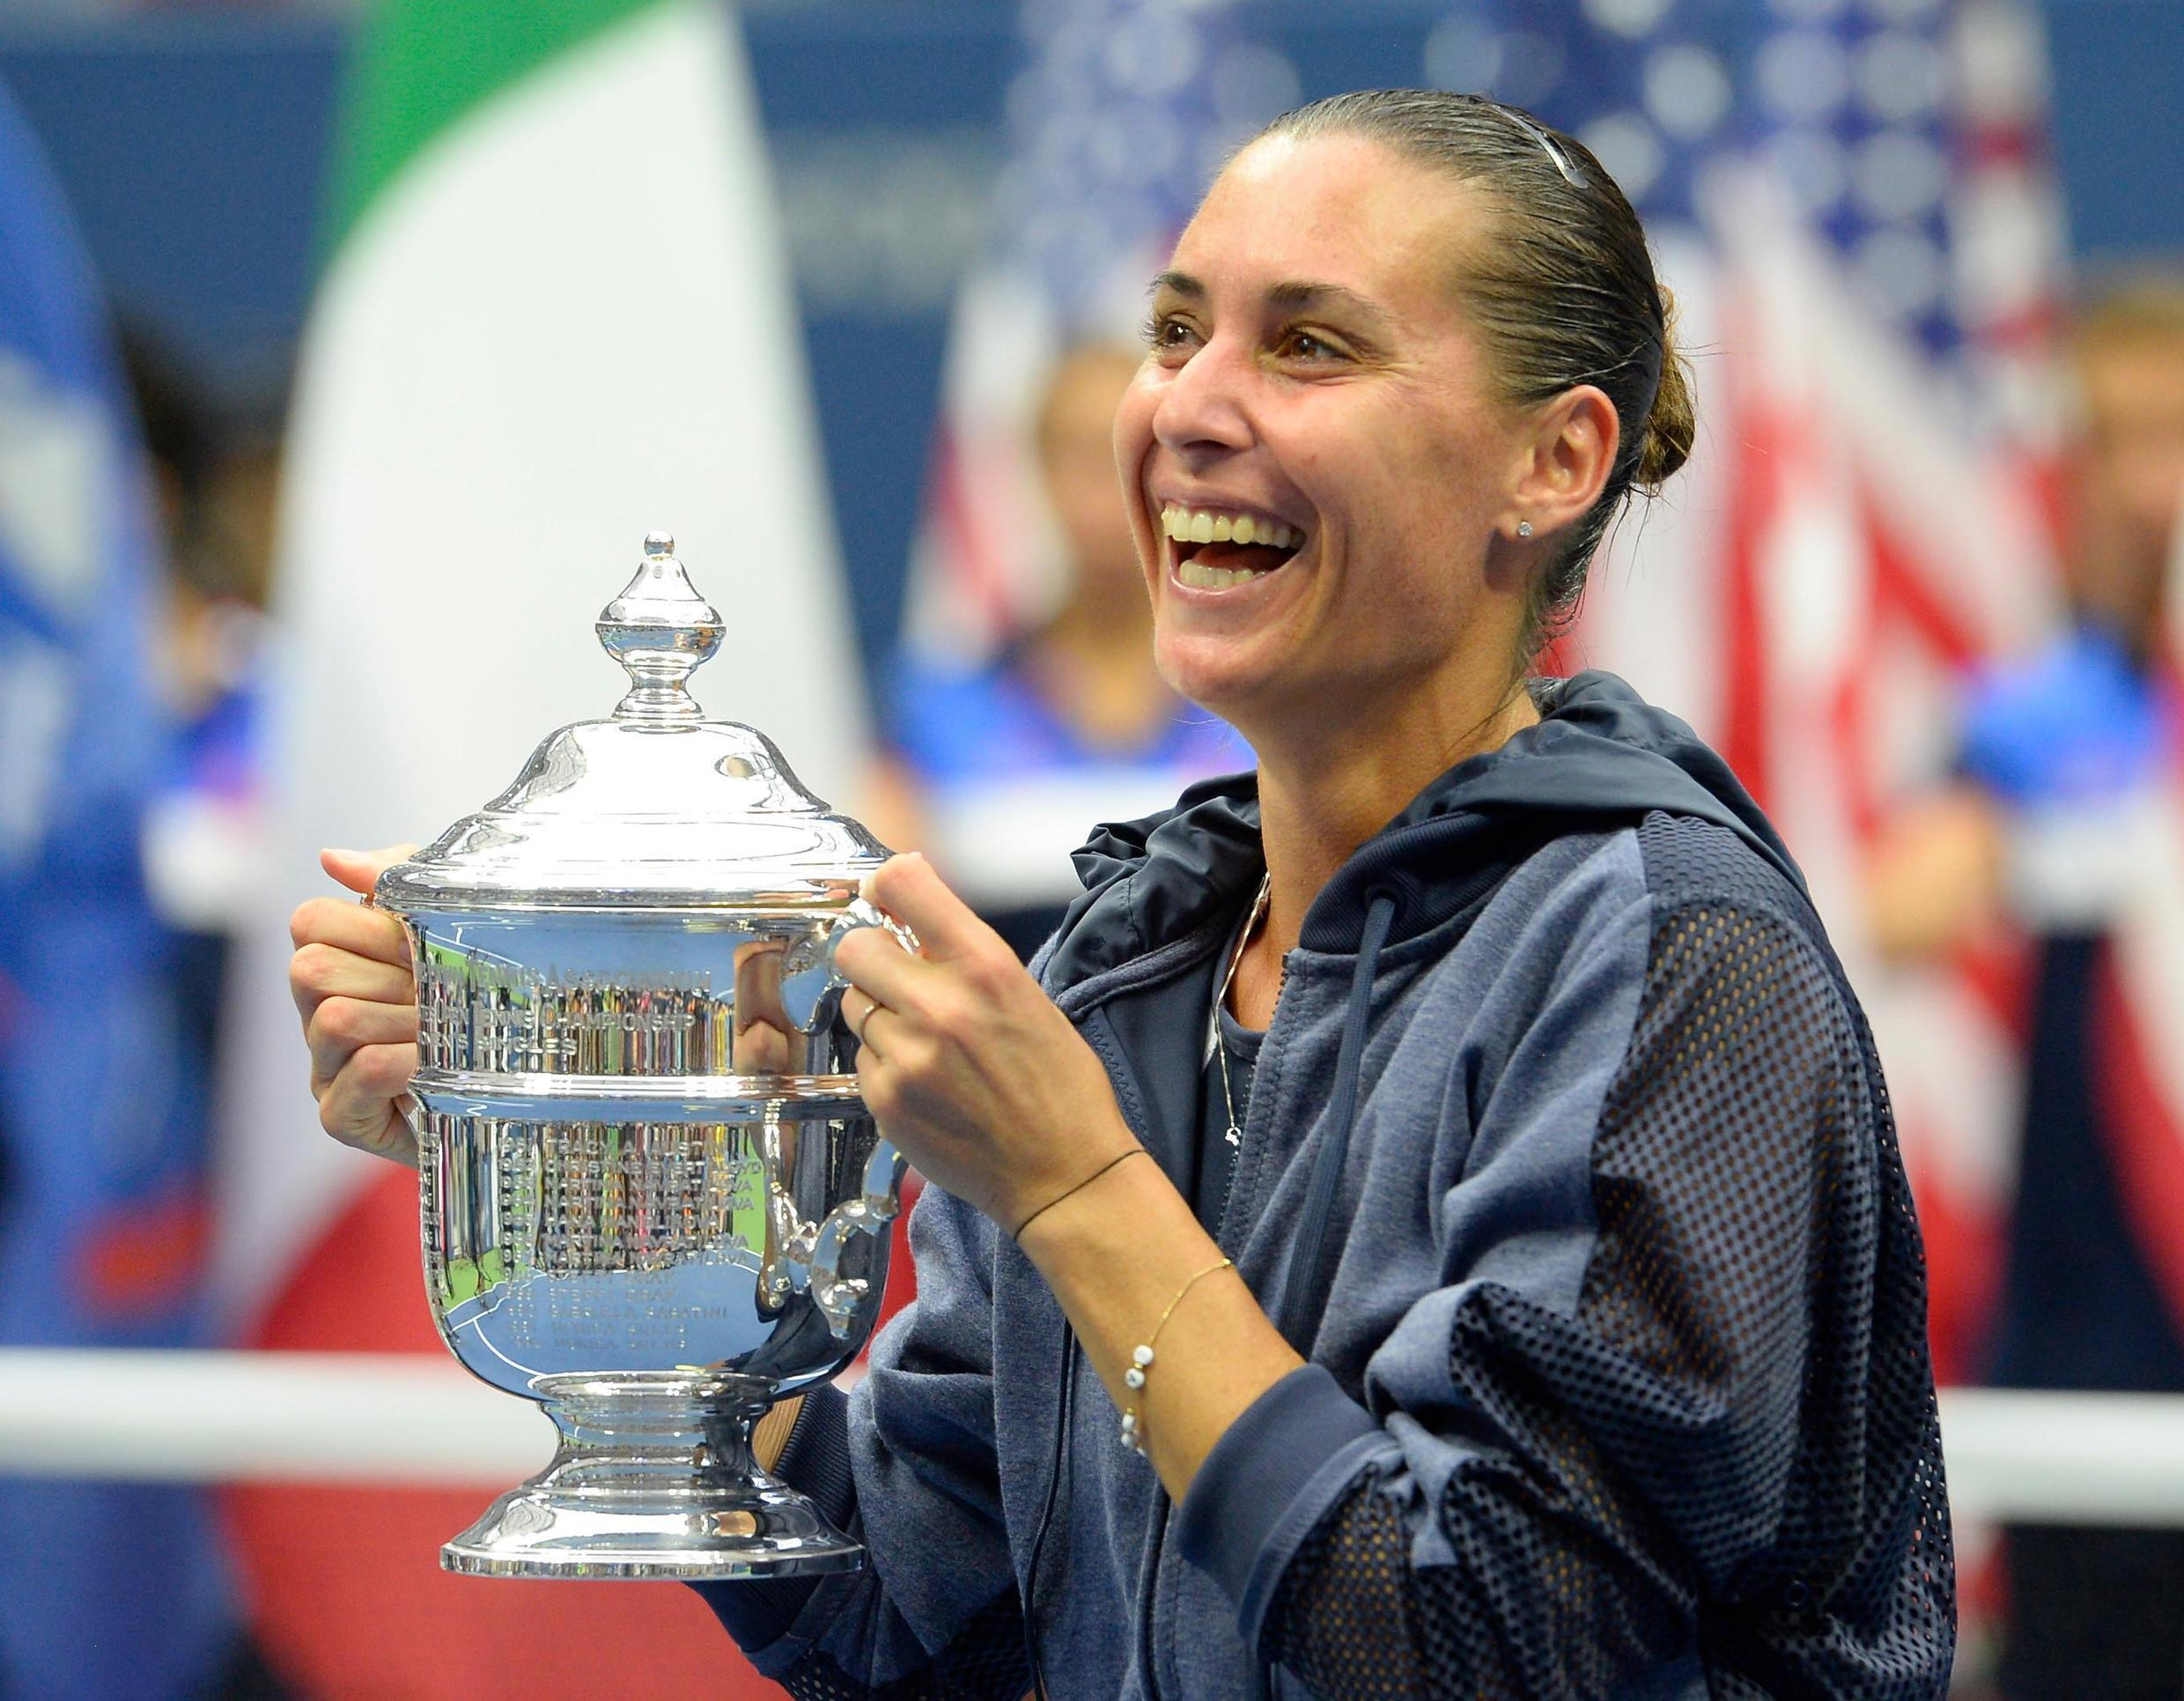 Flavia Pennetta celebrates with the US Open trophy after beating Roberta Vinci of Italy in the women's singles final on Saturday.